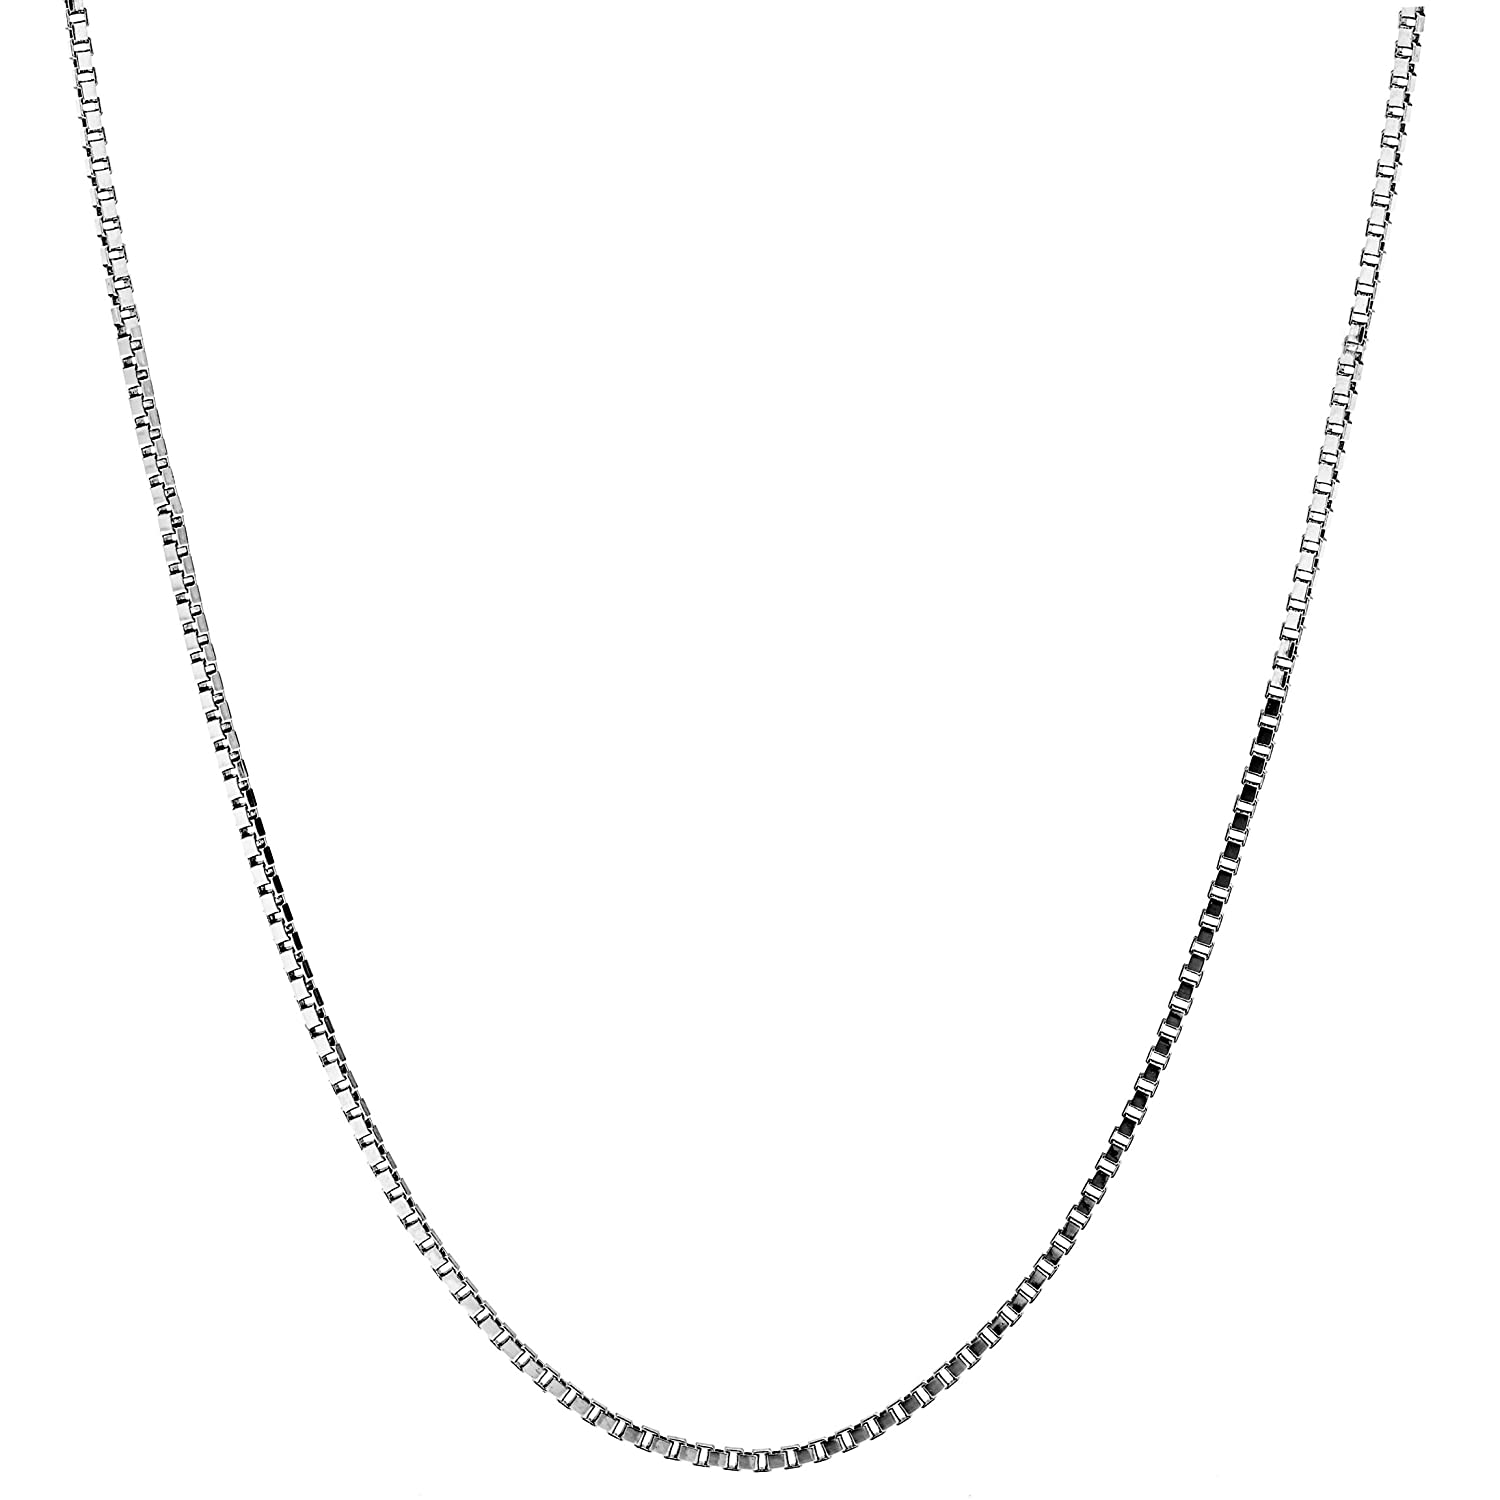 Lifetime Jewelry Pendant Necklace 1.4mm Box Chain of White Gold Rhodium Plated Made Thin for Charms 16-30 Inches Lifetime Products Group RD53A - 30